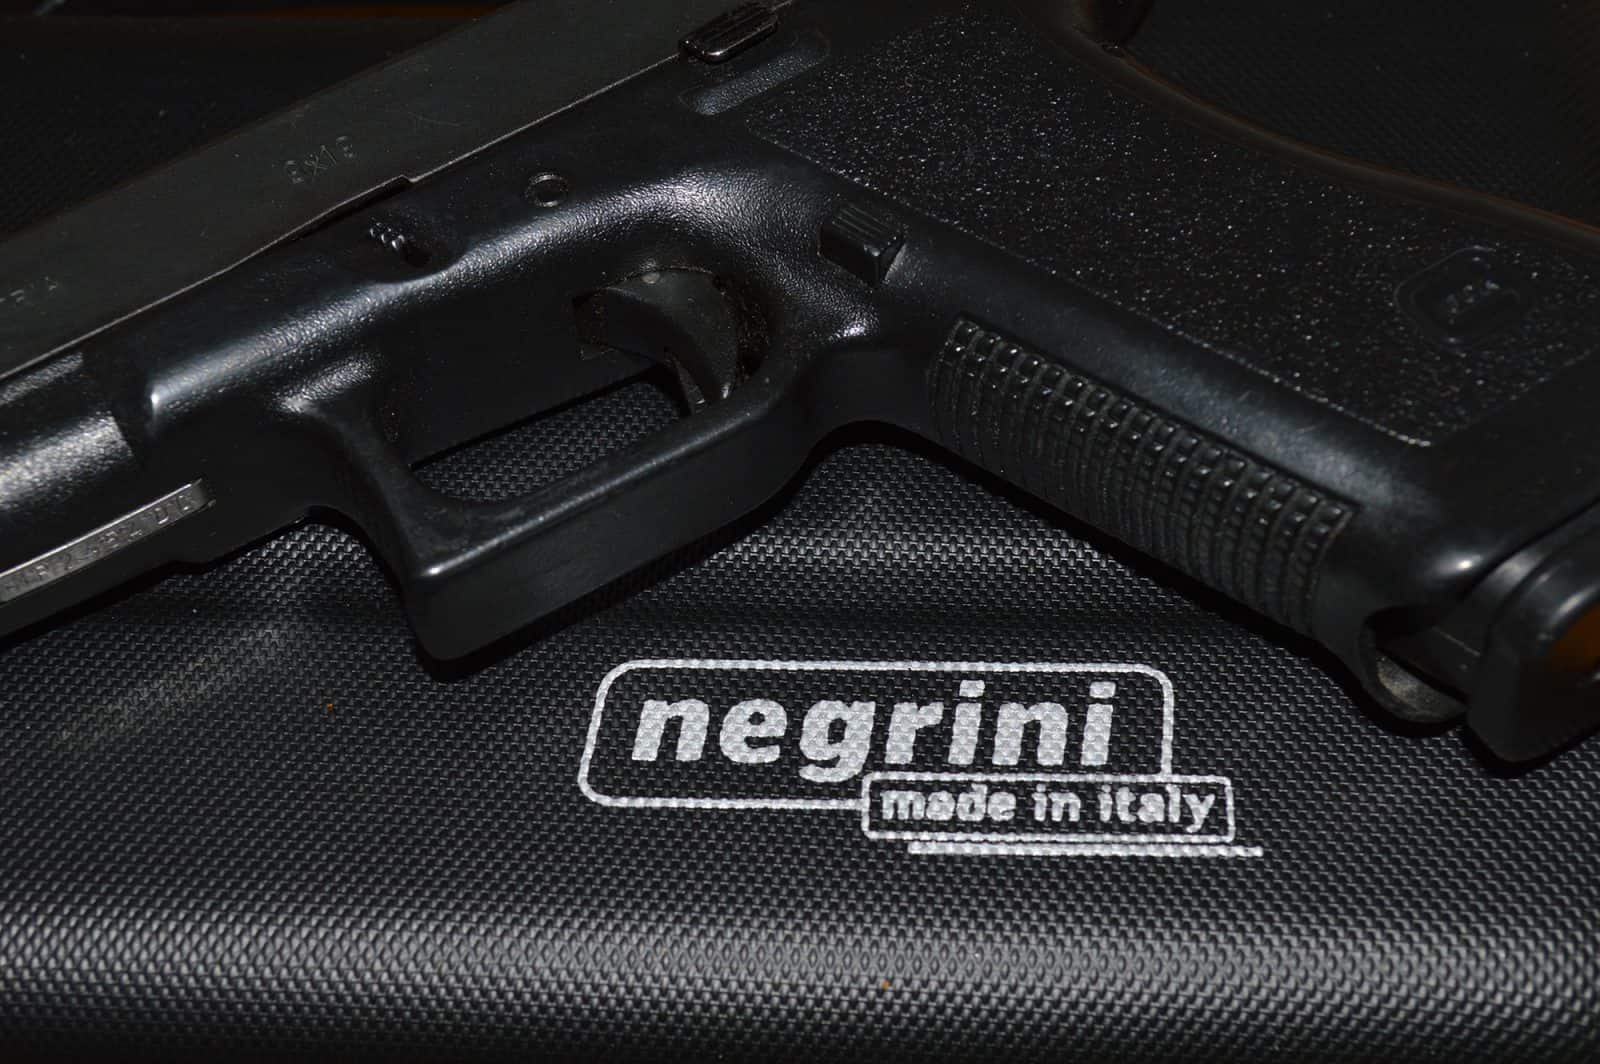 Negrini GLOCK Case review by Max Prasac